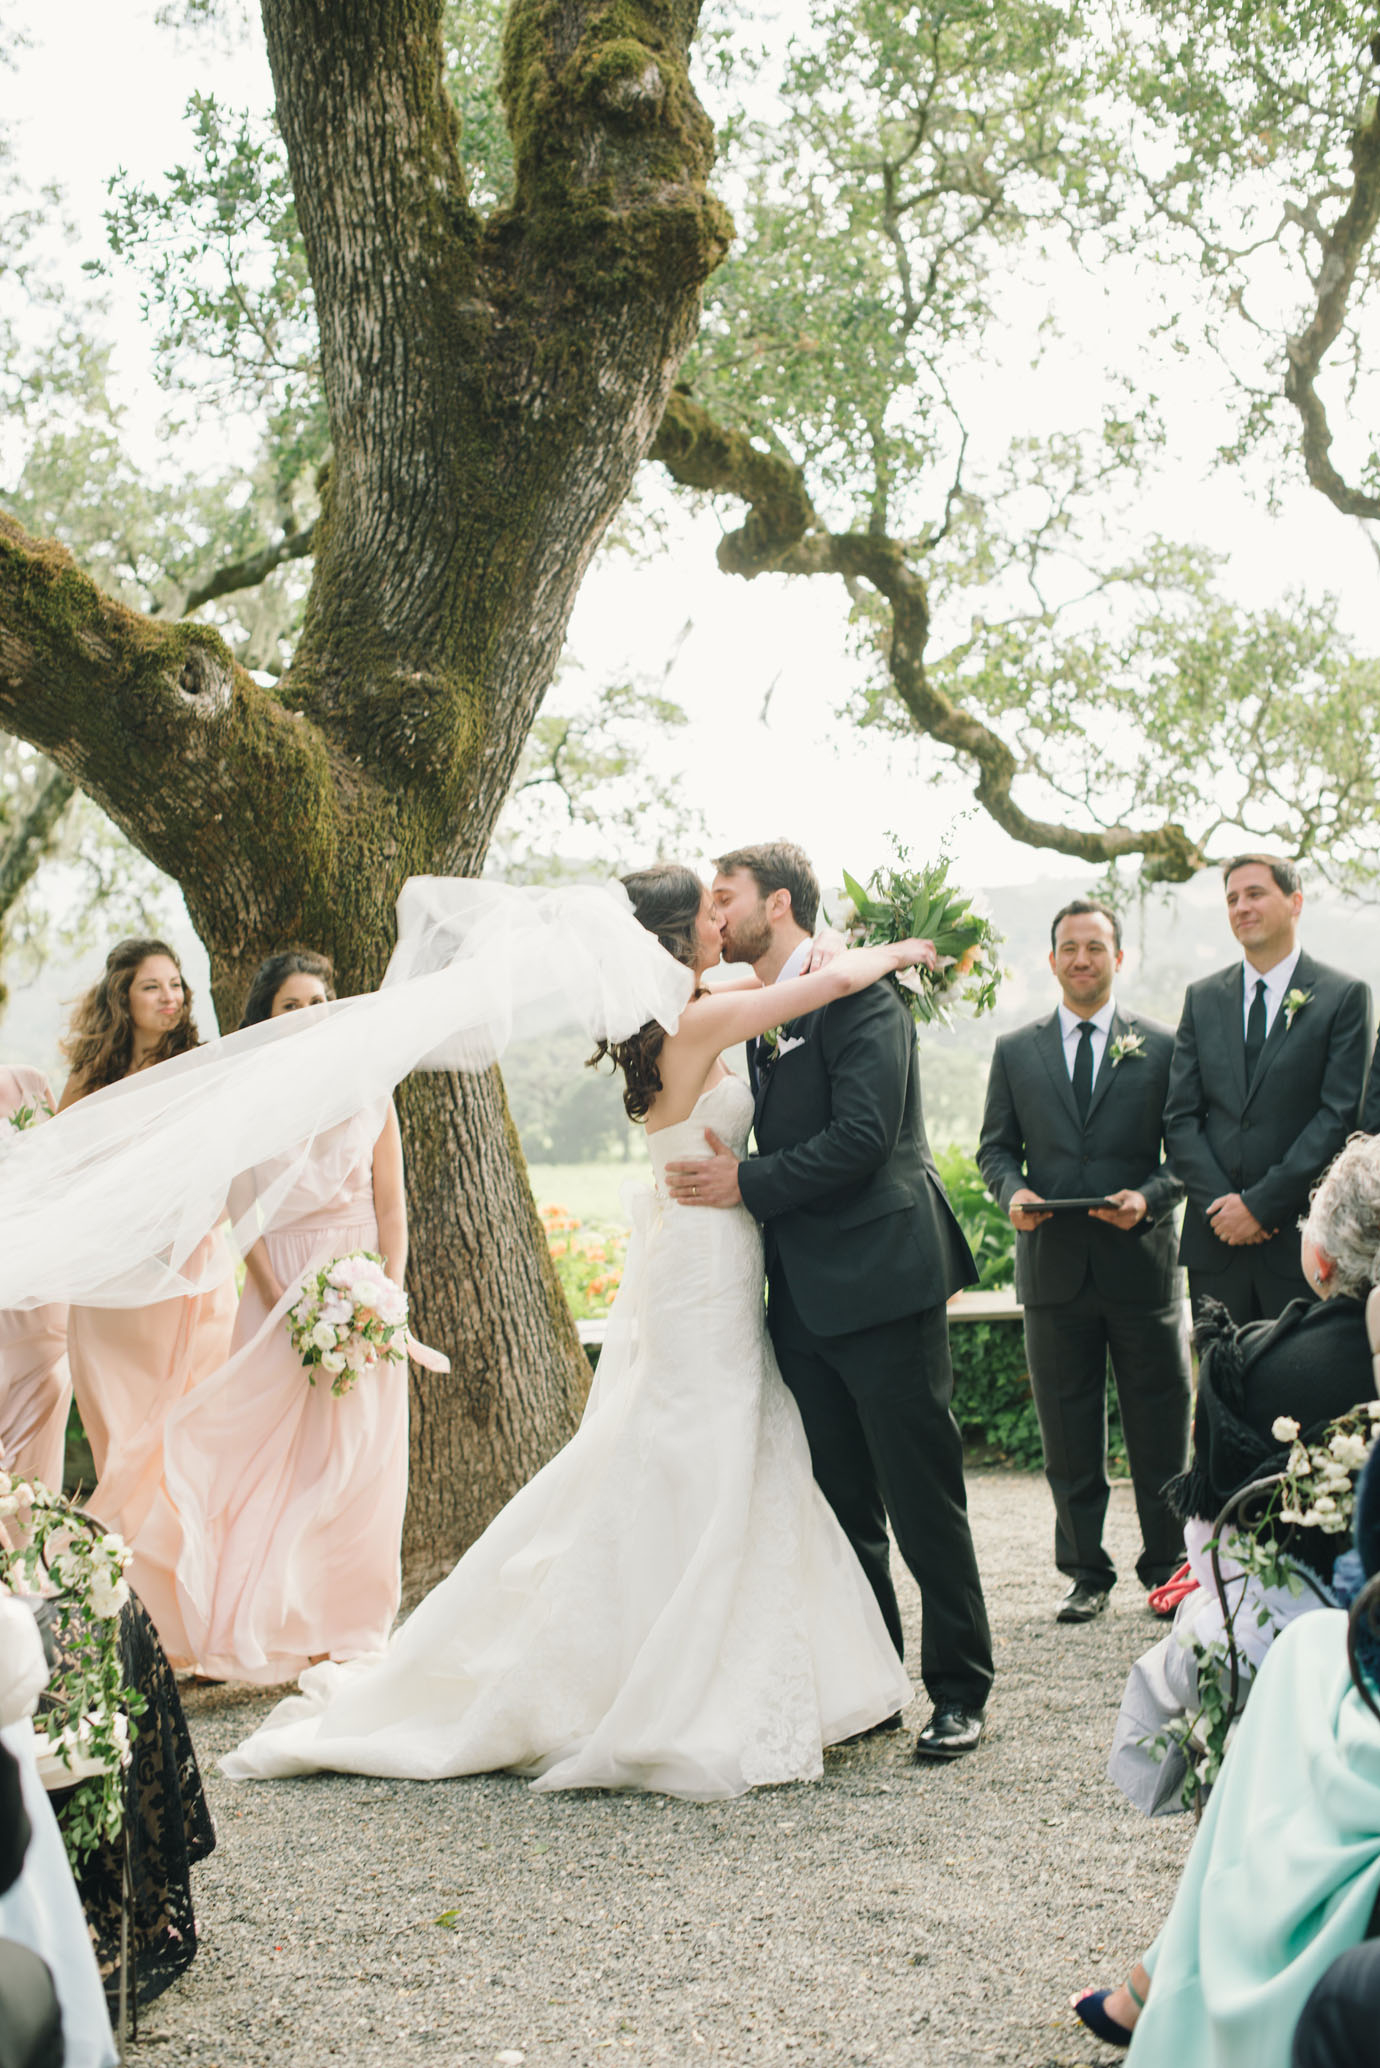 19-real-wedding-at-beltane-ranch077